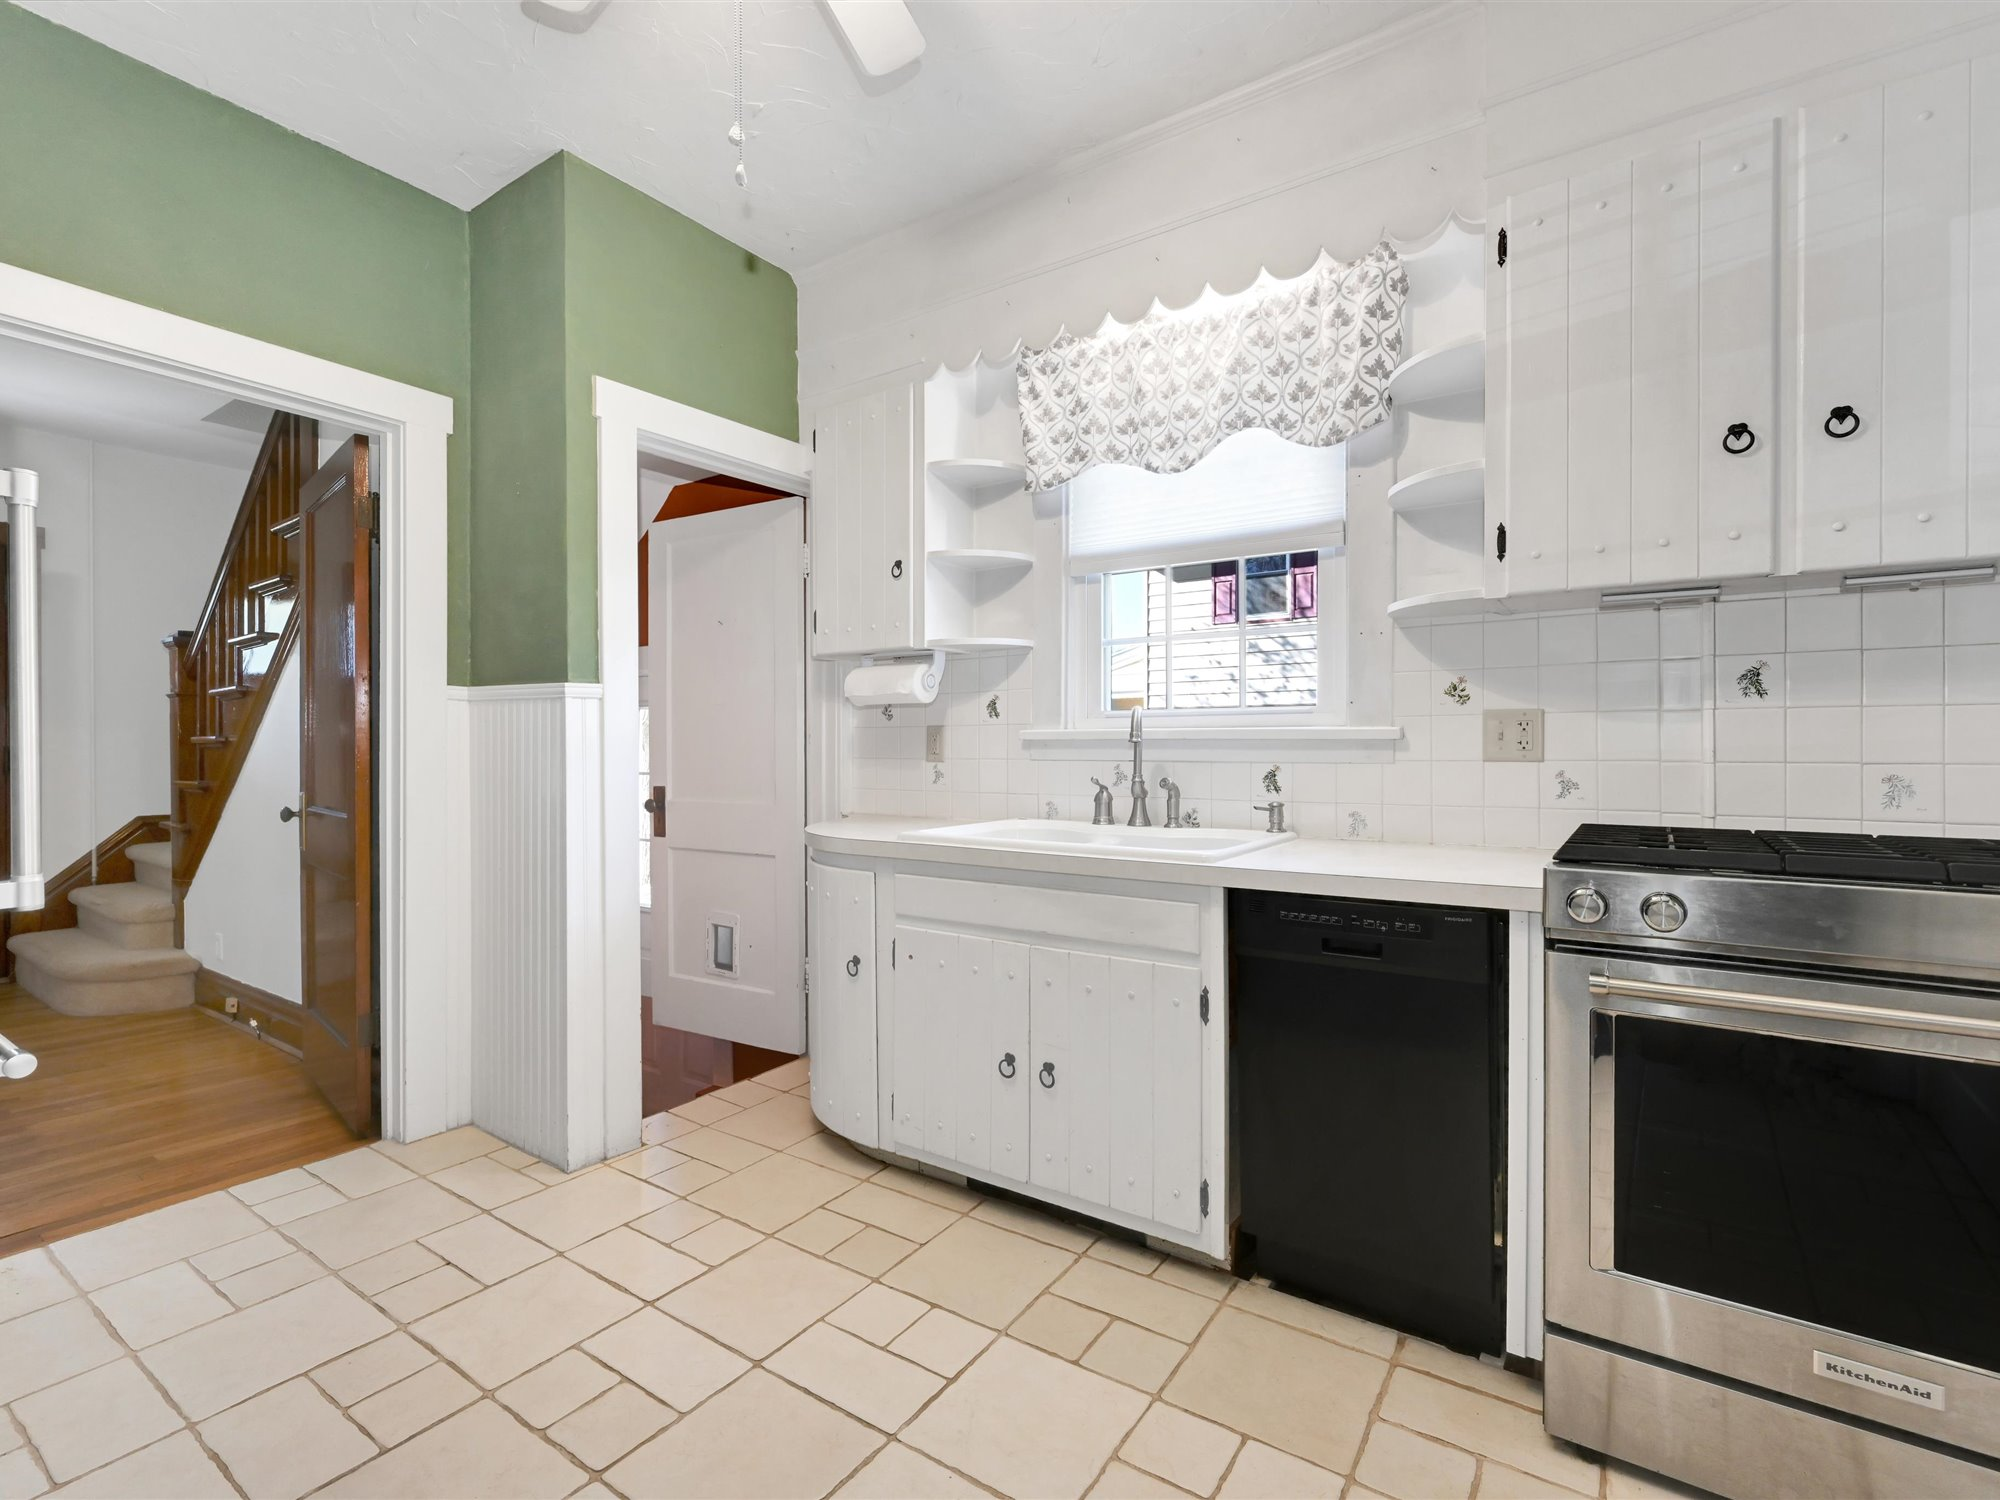 111 Pine Street - kitchen